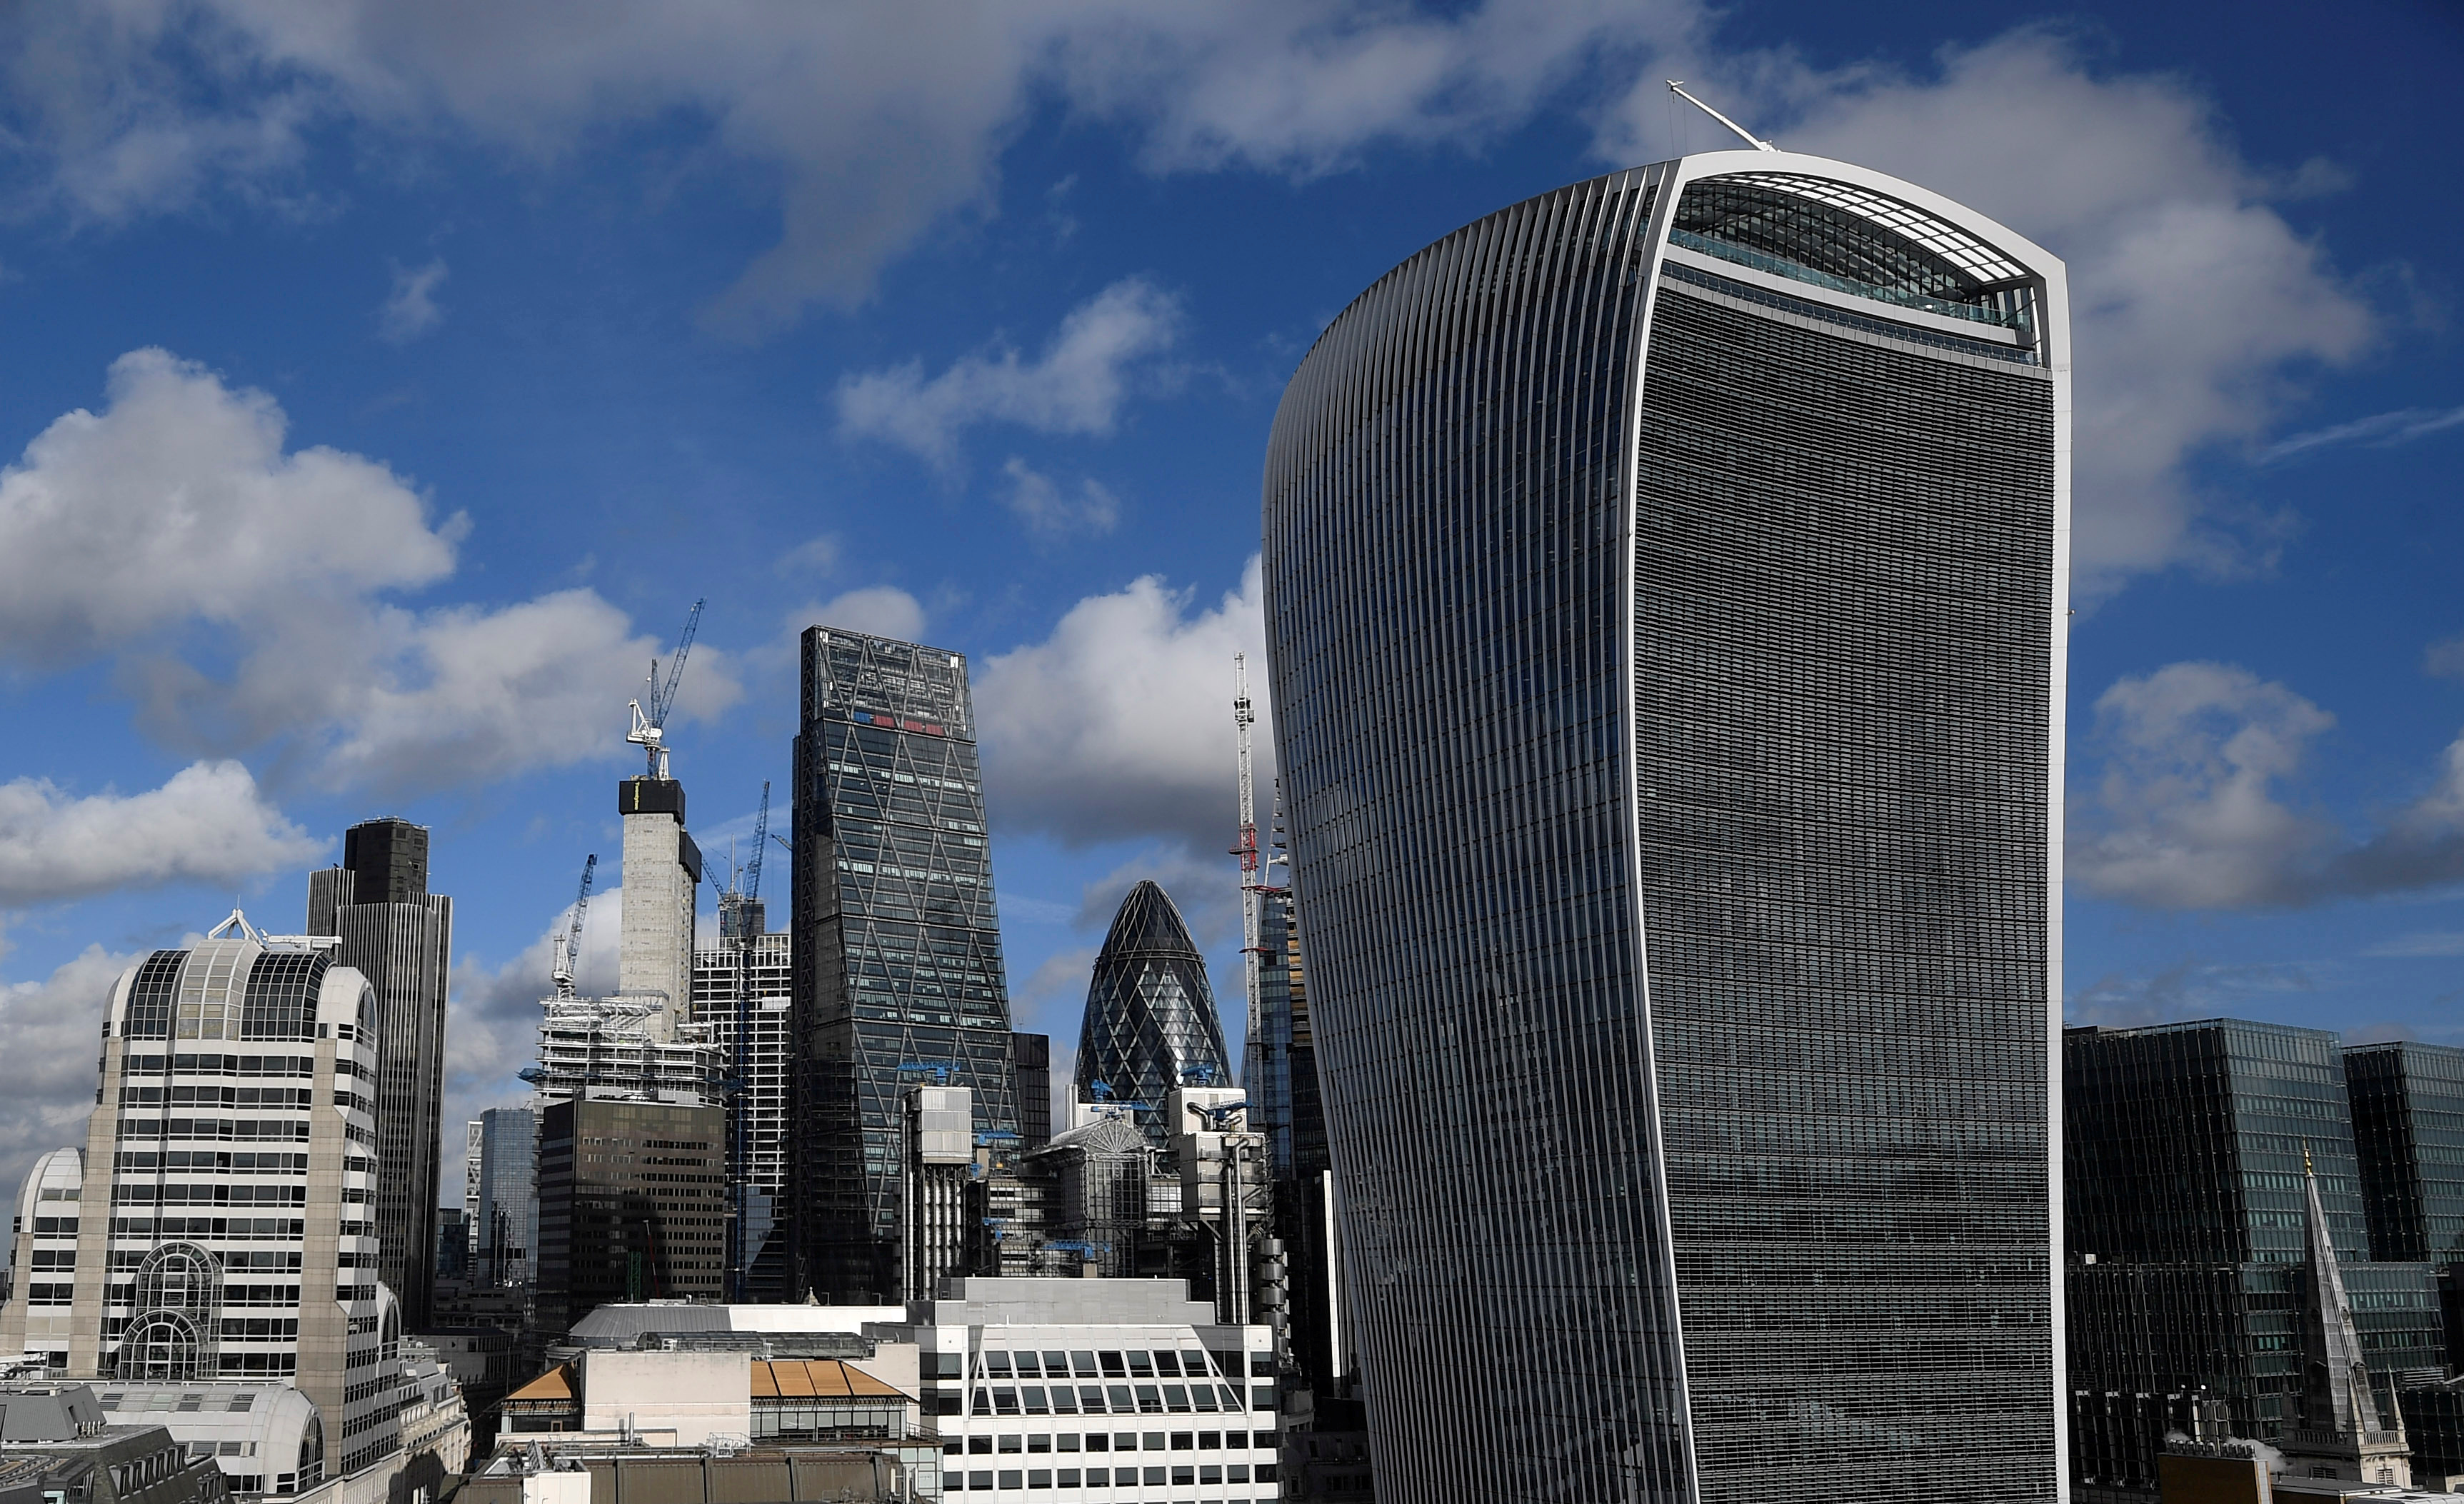 The City of London financial district is seen with office skyscrapers commonly known as 'Cheesegrater', 'Gherkin' and 'Walkie Talkie' seen in London, Britain, January 25, 2018. Picture taken January 25, 2018.  REUTERS/Toby Melville/File Photo